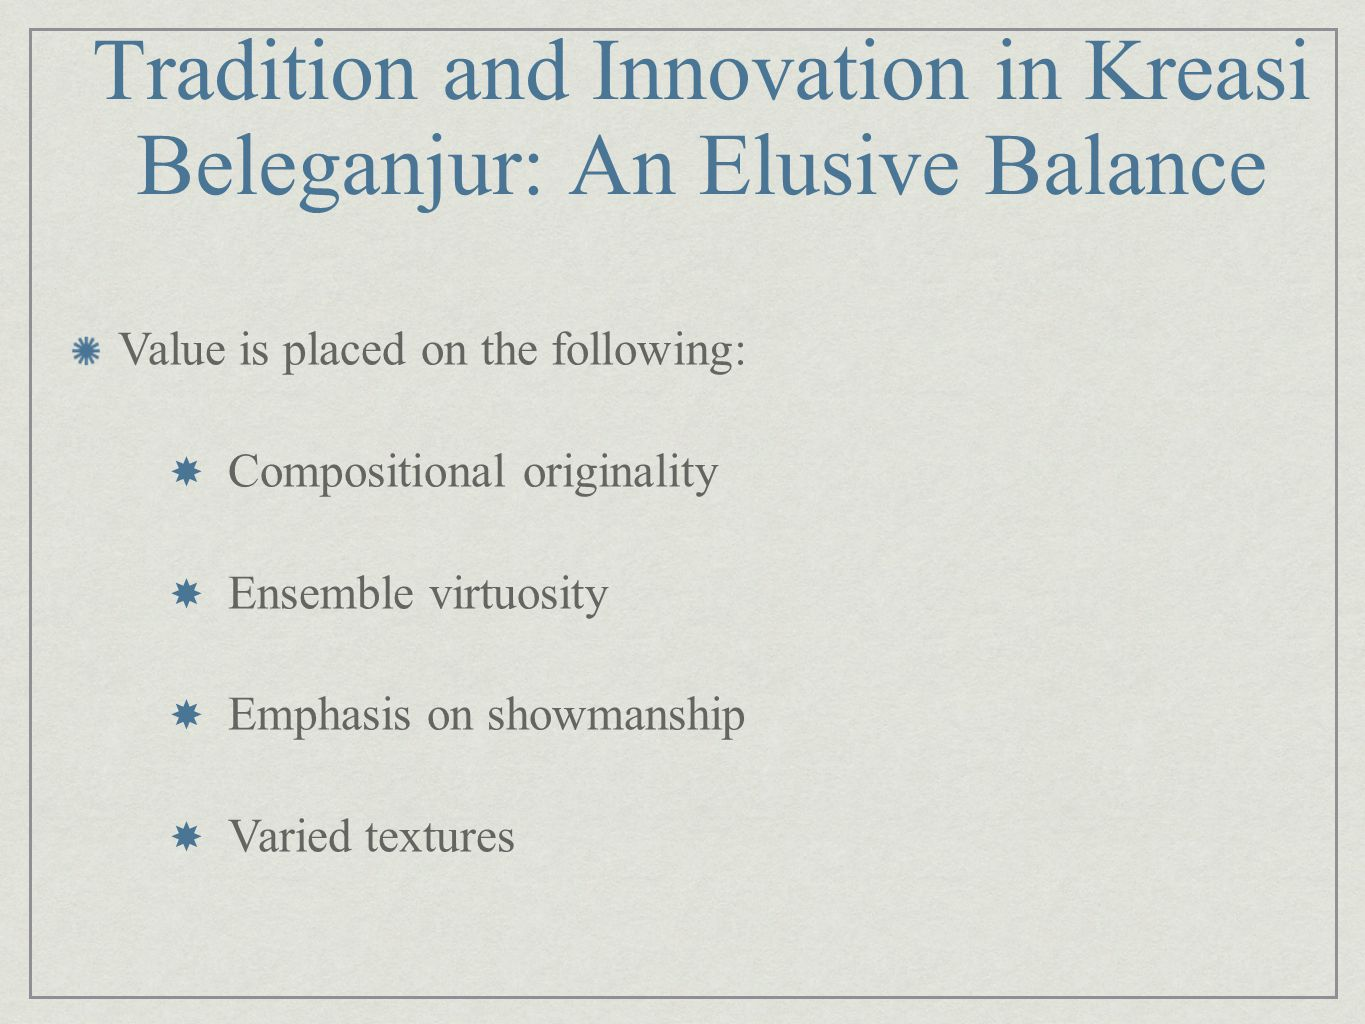 Tradition and Innovation in Kreasi Beleganjur: An Elusive Balance